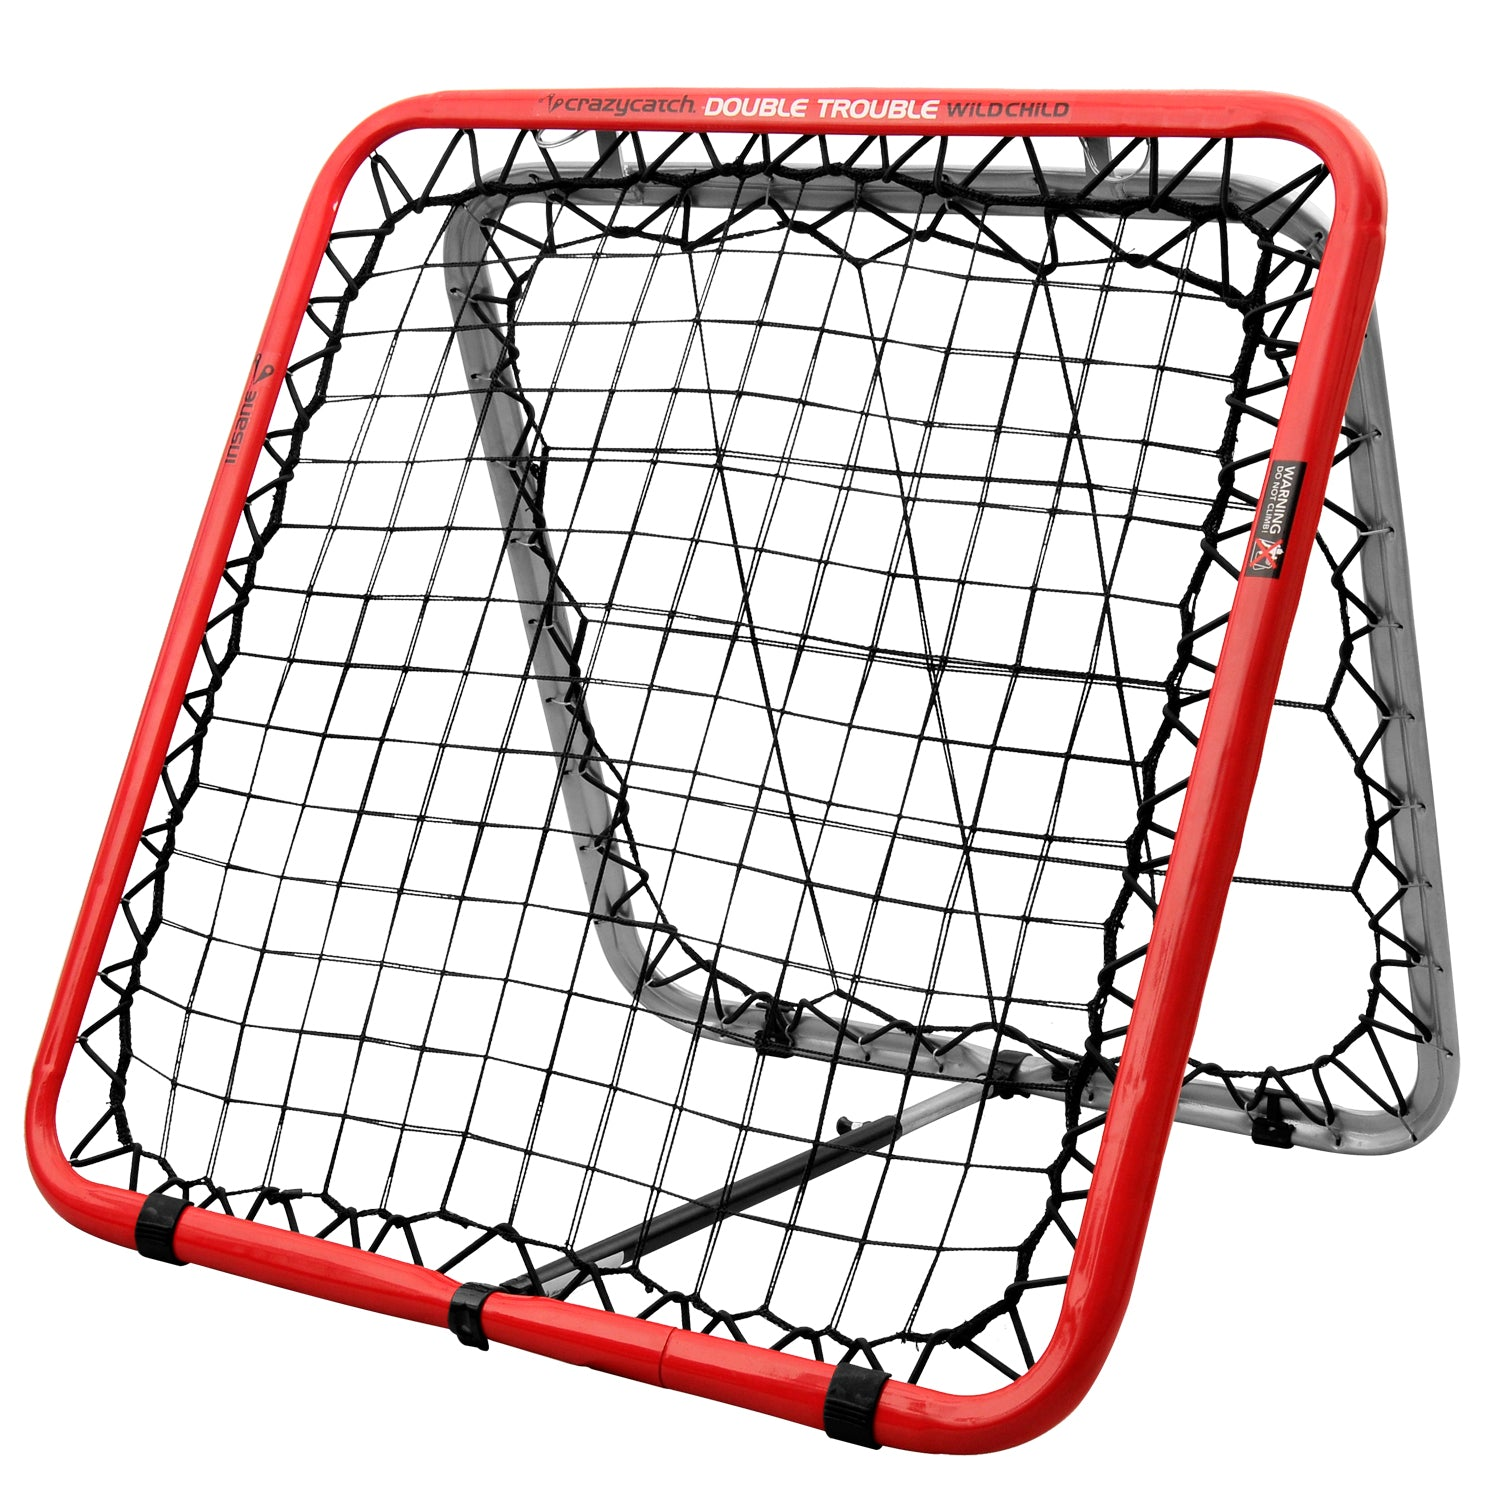 Crazy Catch - Wild Child Double Trouble Sports Rebound Net Great For Soccer Training, Football Training And All Major Sports